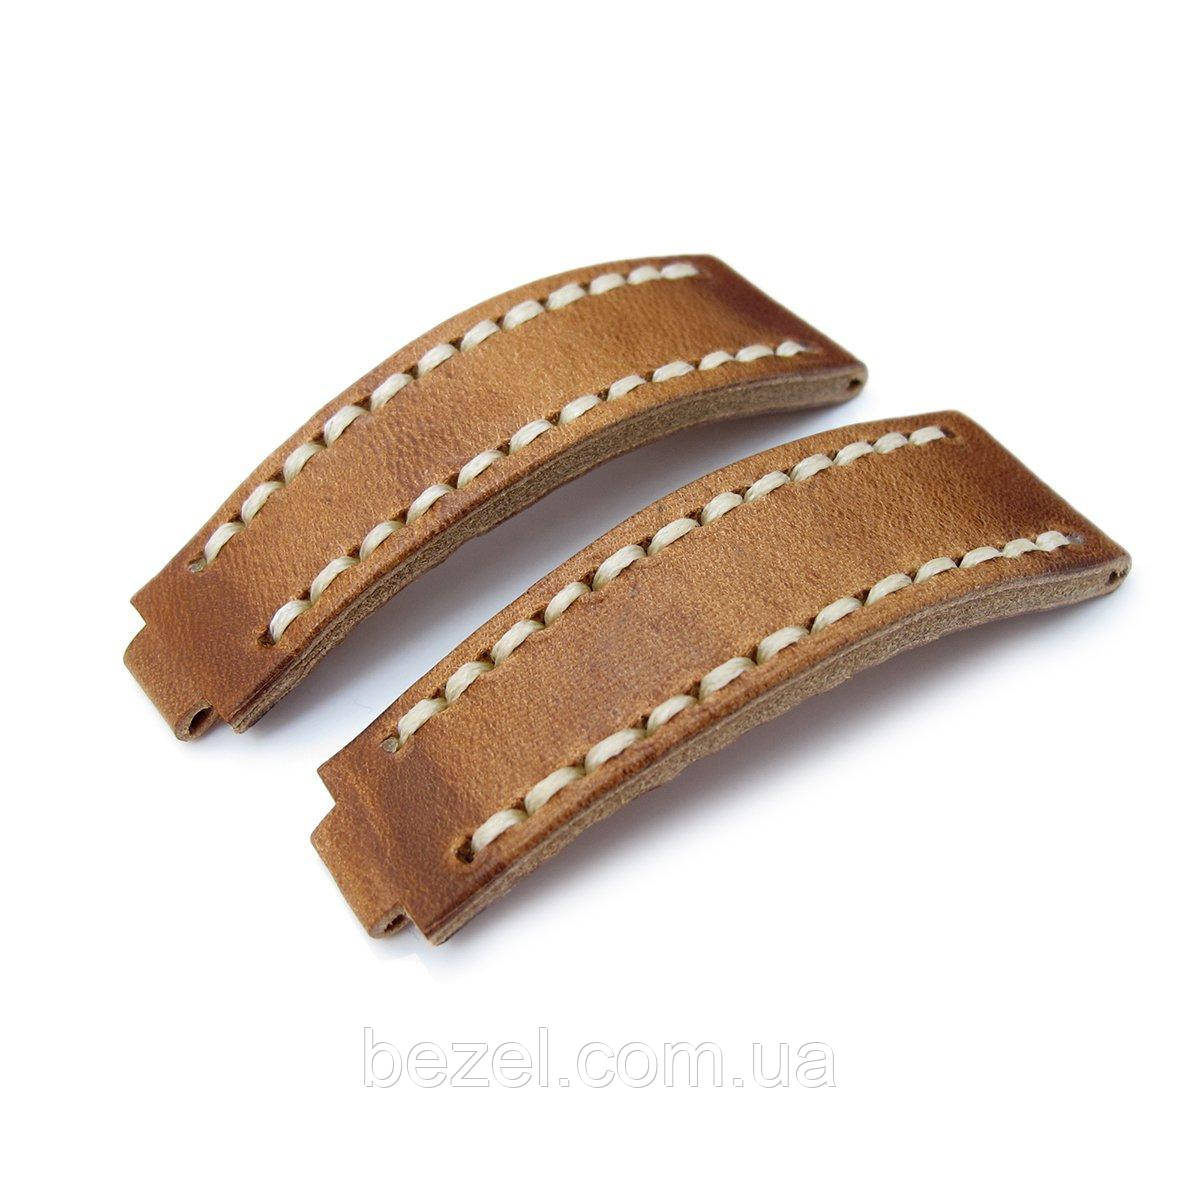 20mm MiLTAT RX Collection 'X' Watch Strap, Matte Brown Pull Up Leather, Beige St. Tailor-made for Rolex Submariner & Explorer